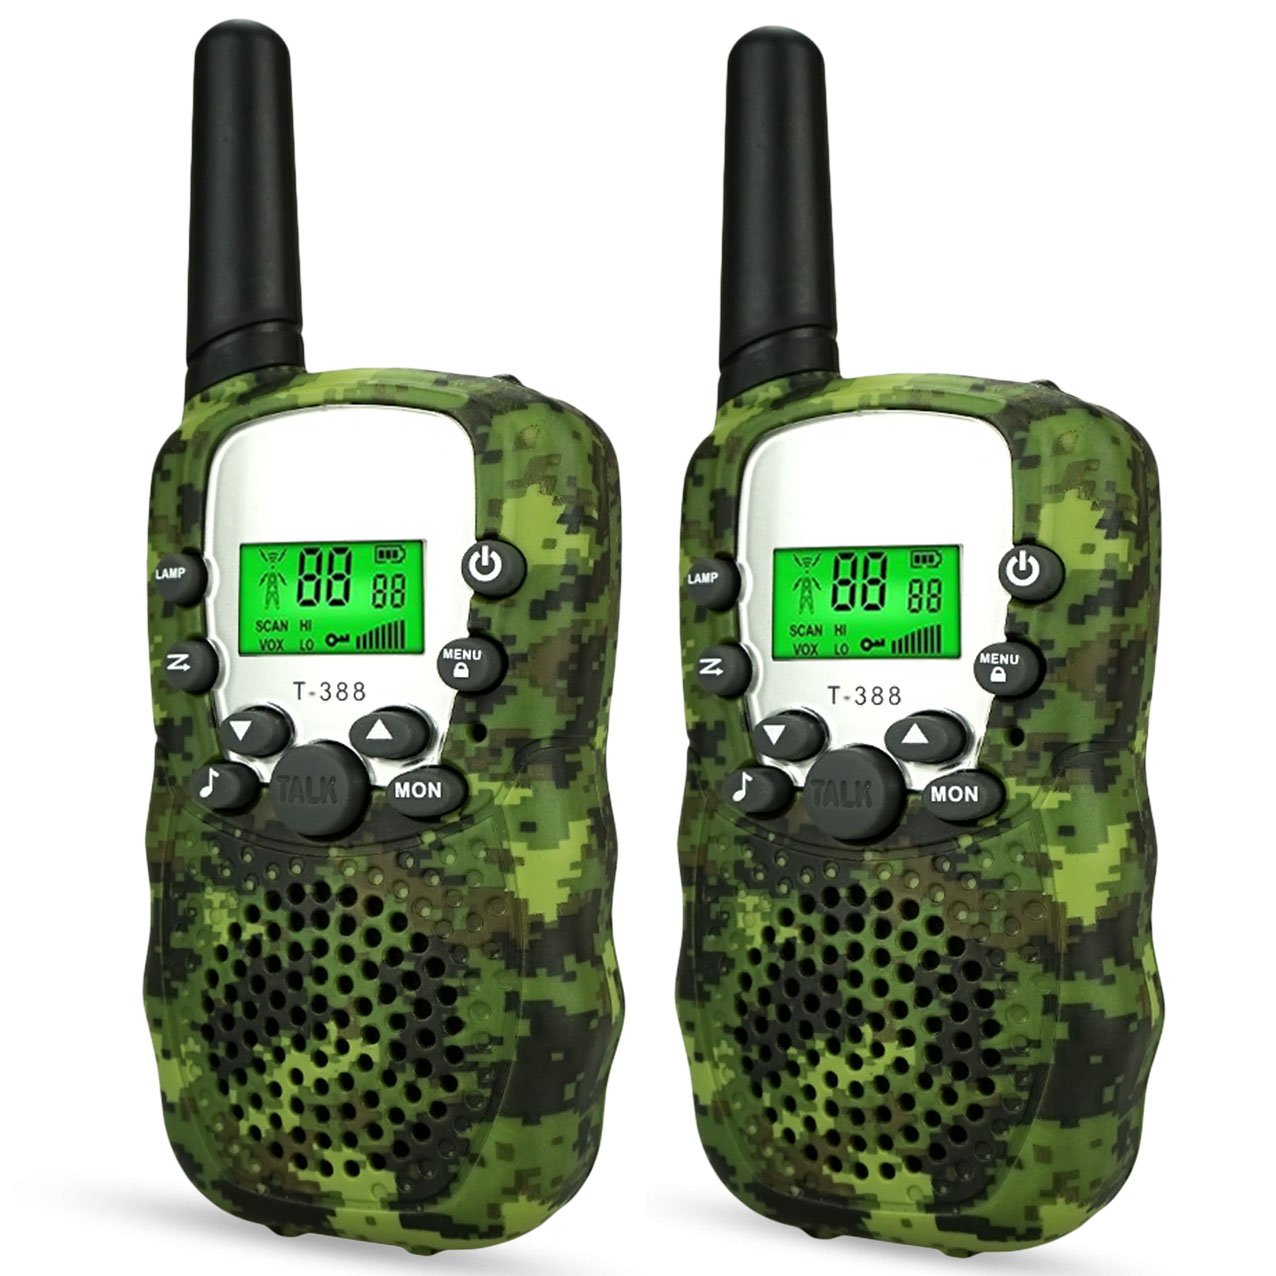 DIMY Walkie Talkies for Kids 2 Mile Range Built in Flash Light TM388 Best Gifts